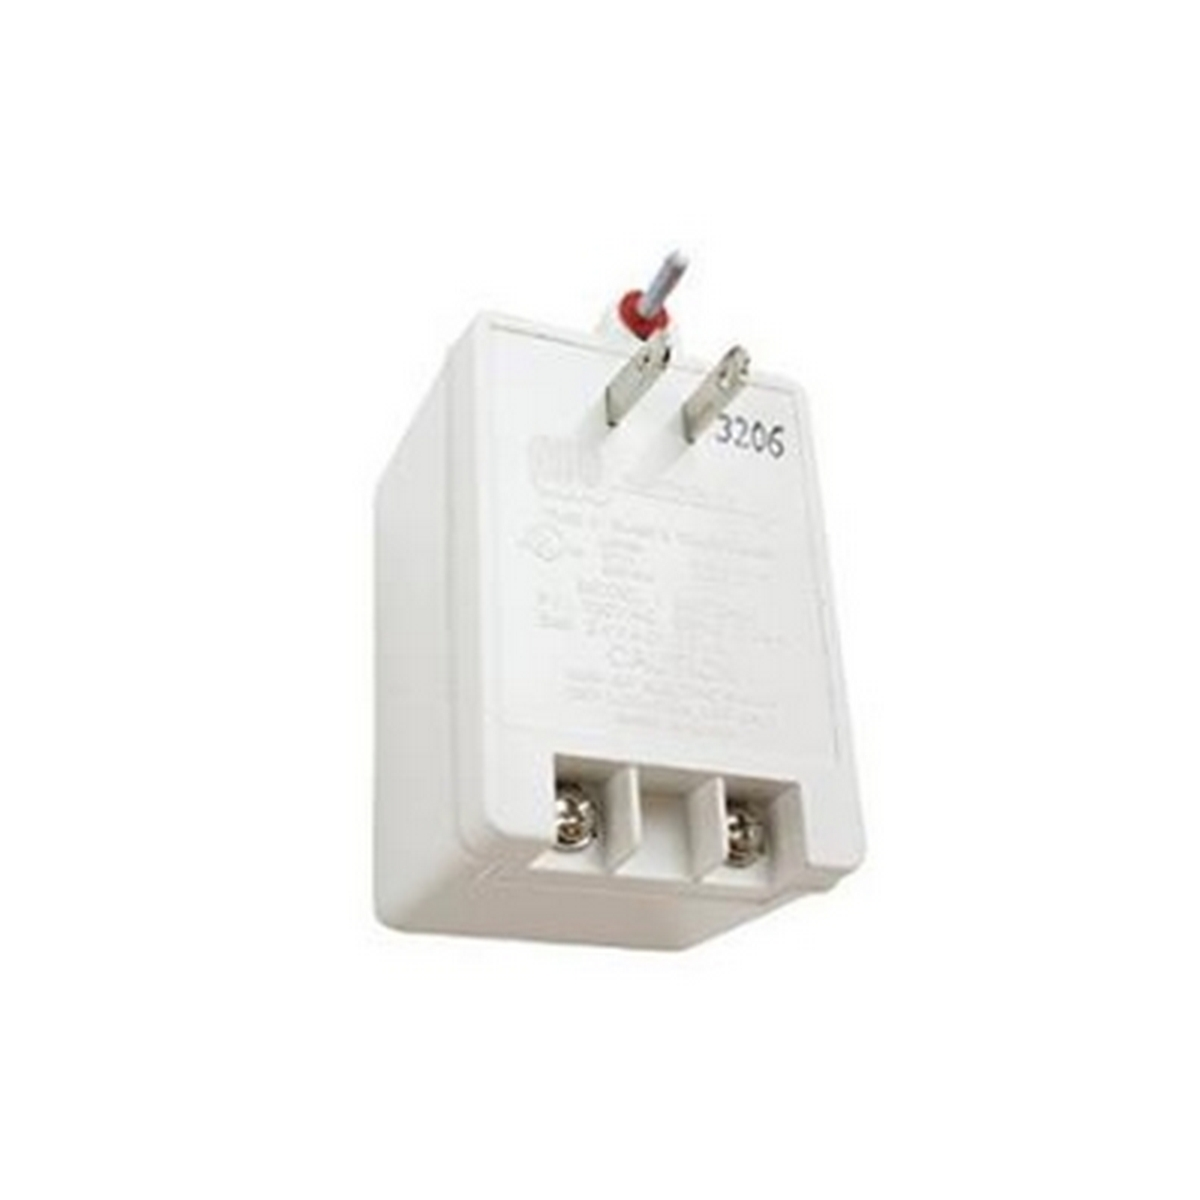 MG Electronics MGT2420 24 VAC 20 VA Class II Plug-In Power Supply, UL/CSA Approved, White Housing